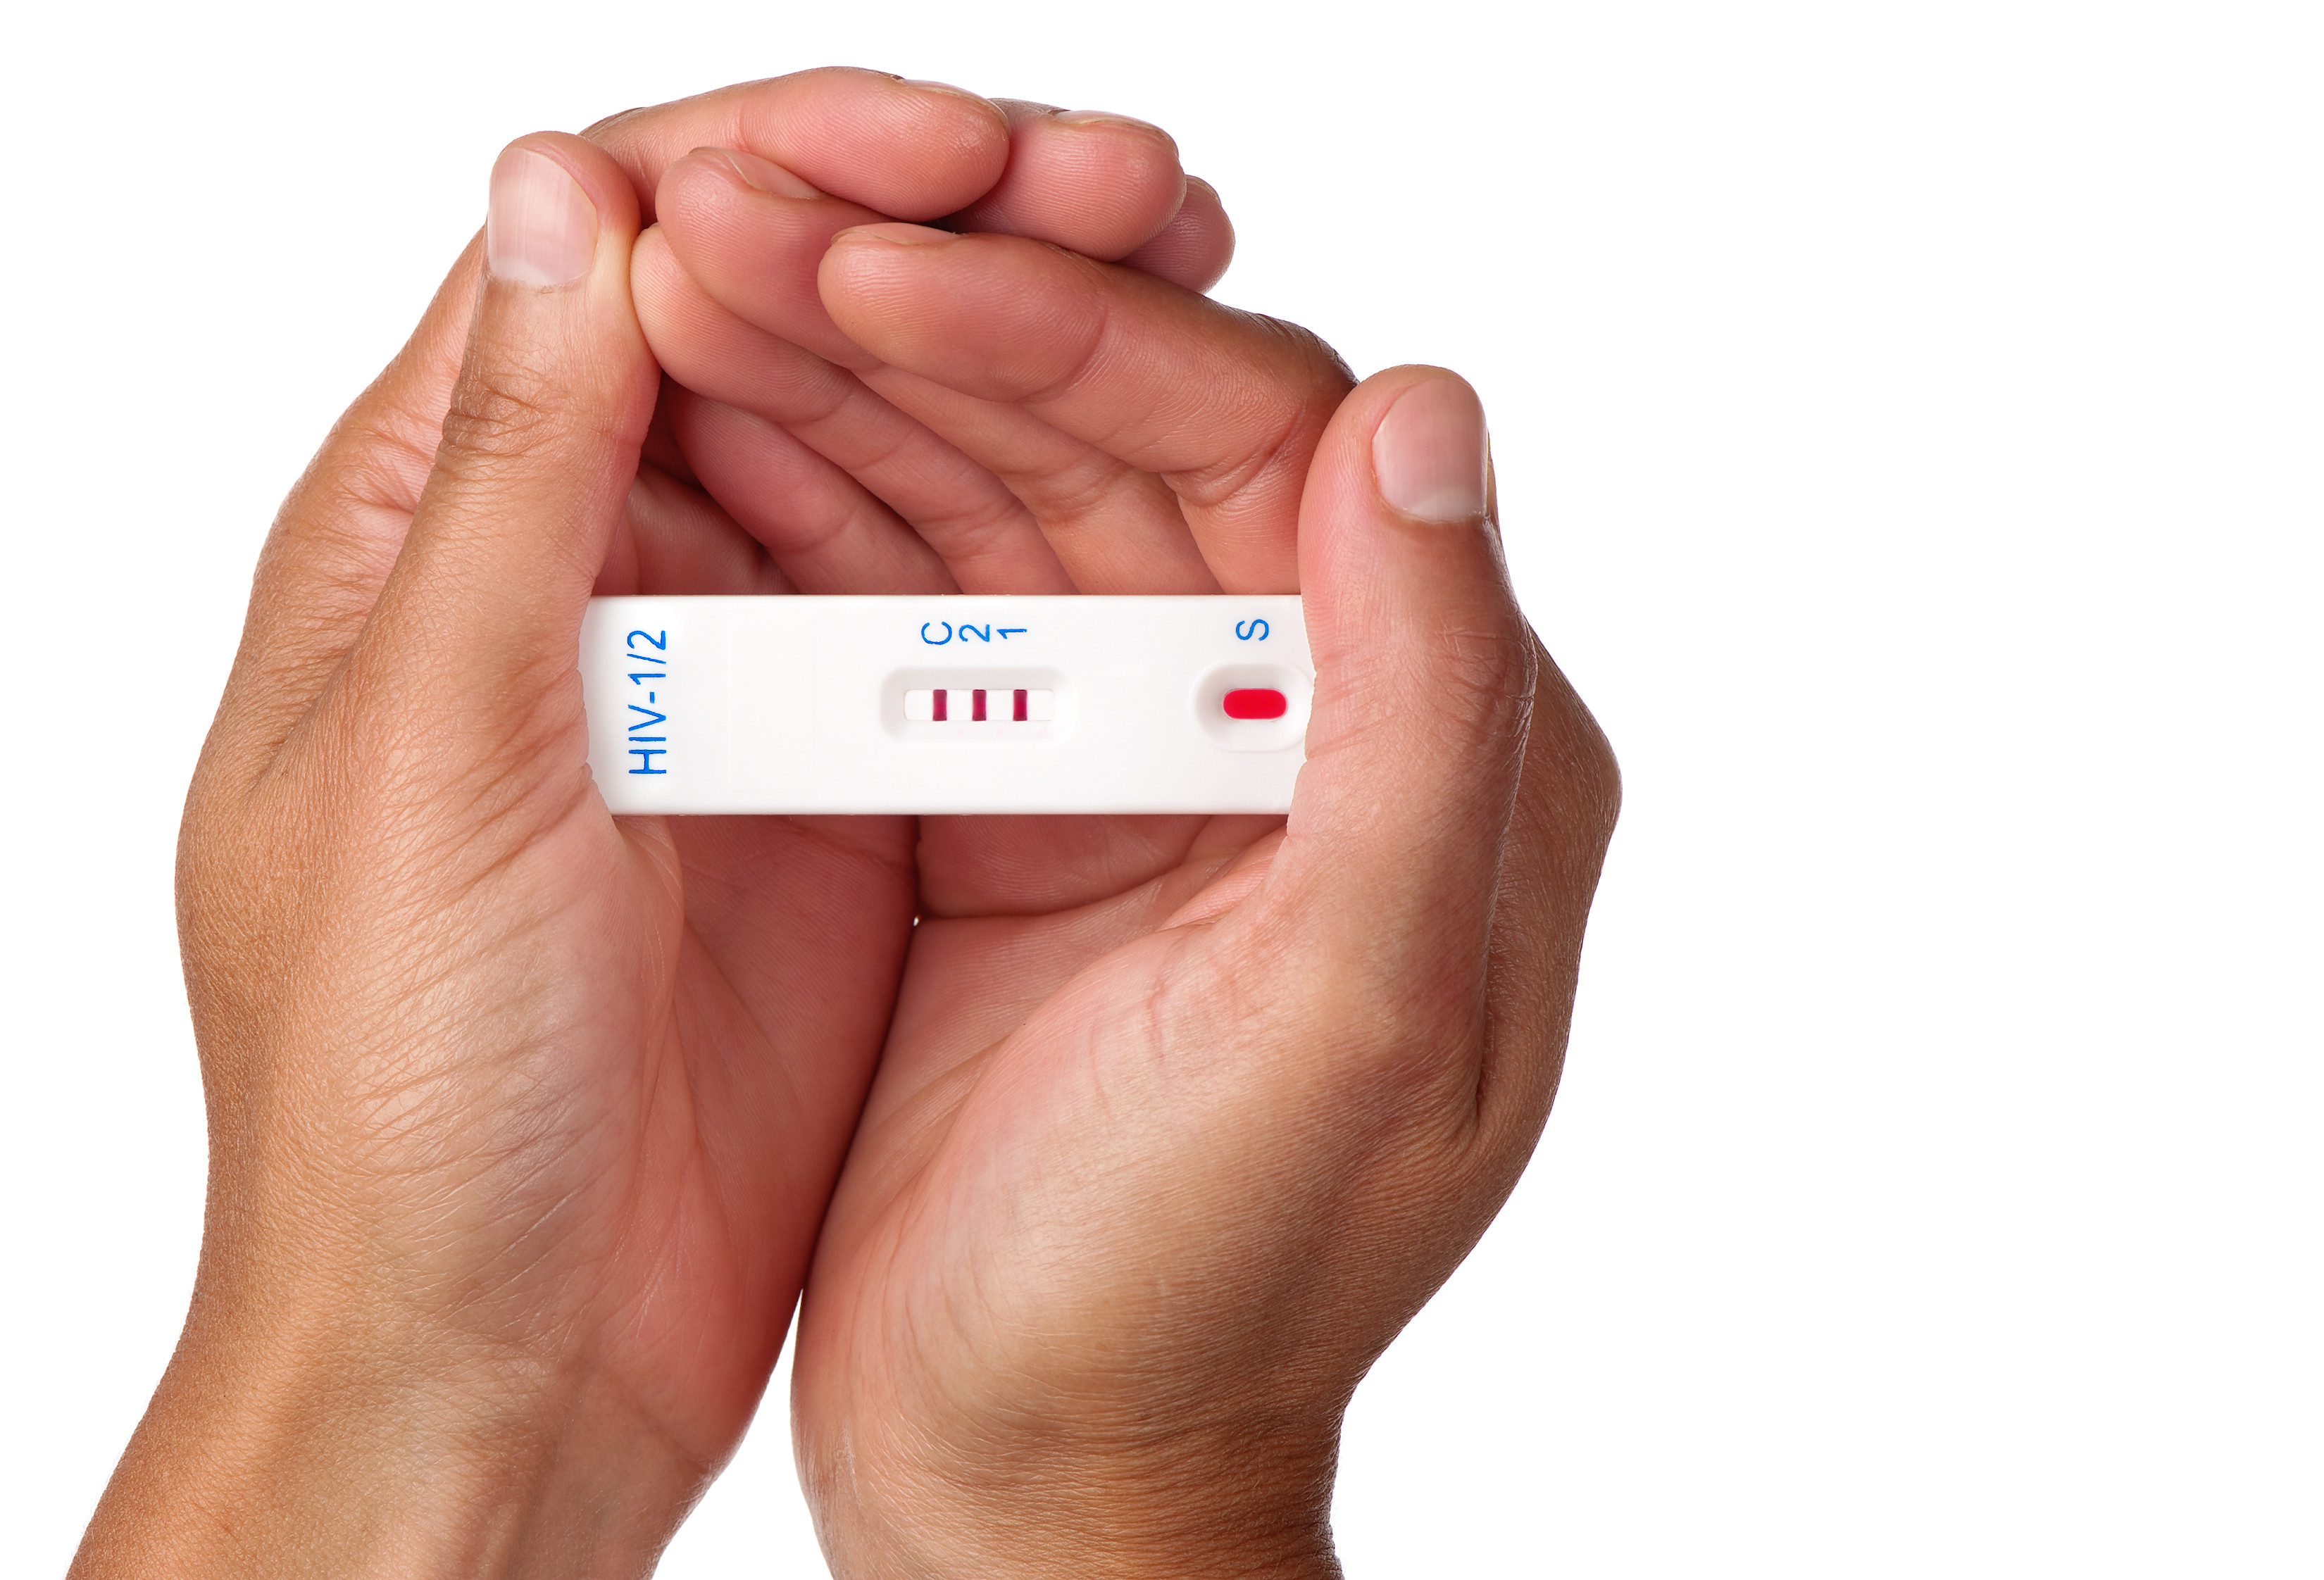 Product HIV Test